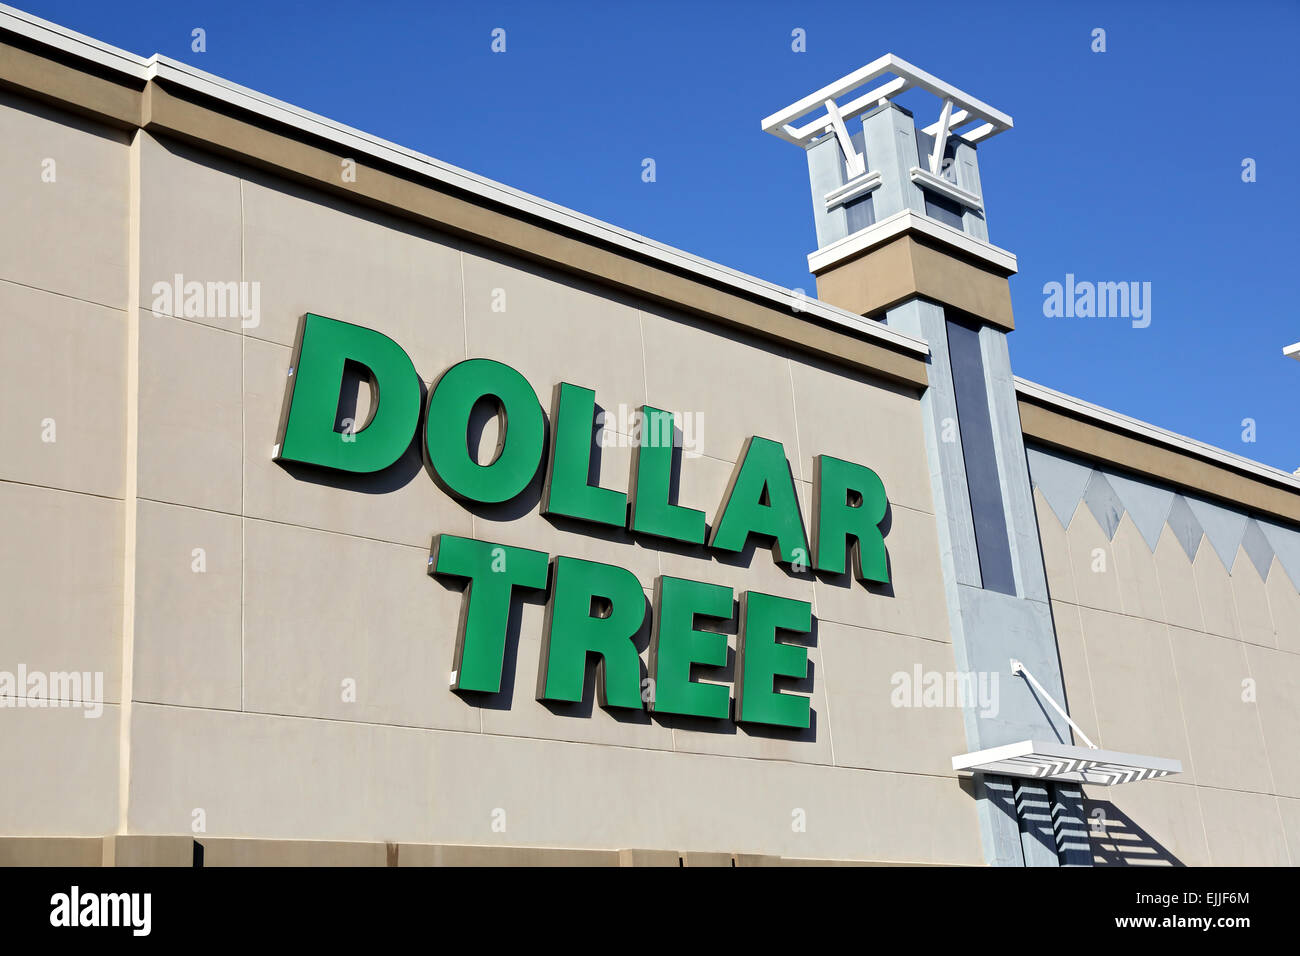 Dollar Store Stock Photos & Dollar Store Stock Images - Alamy